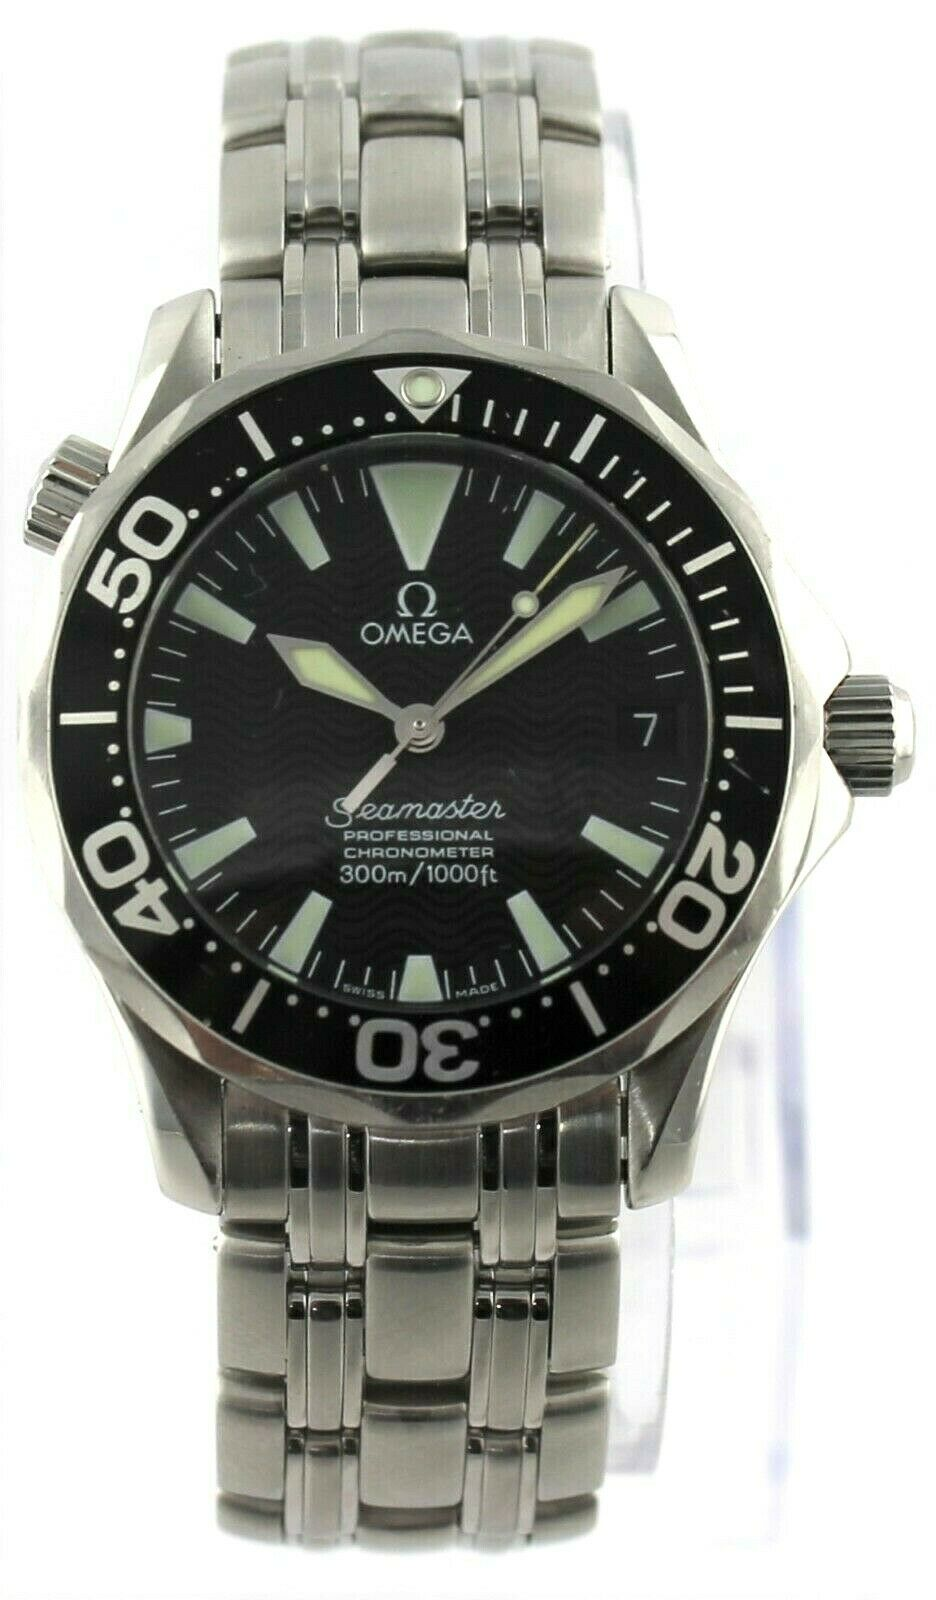 OMEGA SEAMASTER 2052.50 PROFESSIONAL AUTOMATIC LARGE MIDSIZE BOND WATCH SERVICED